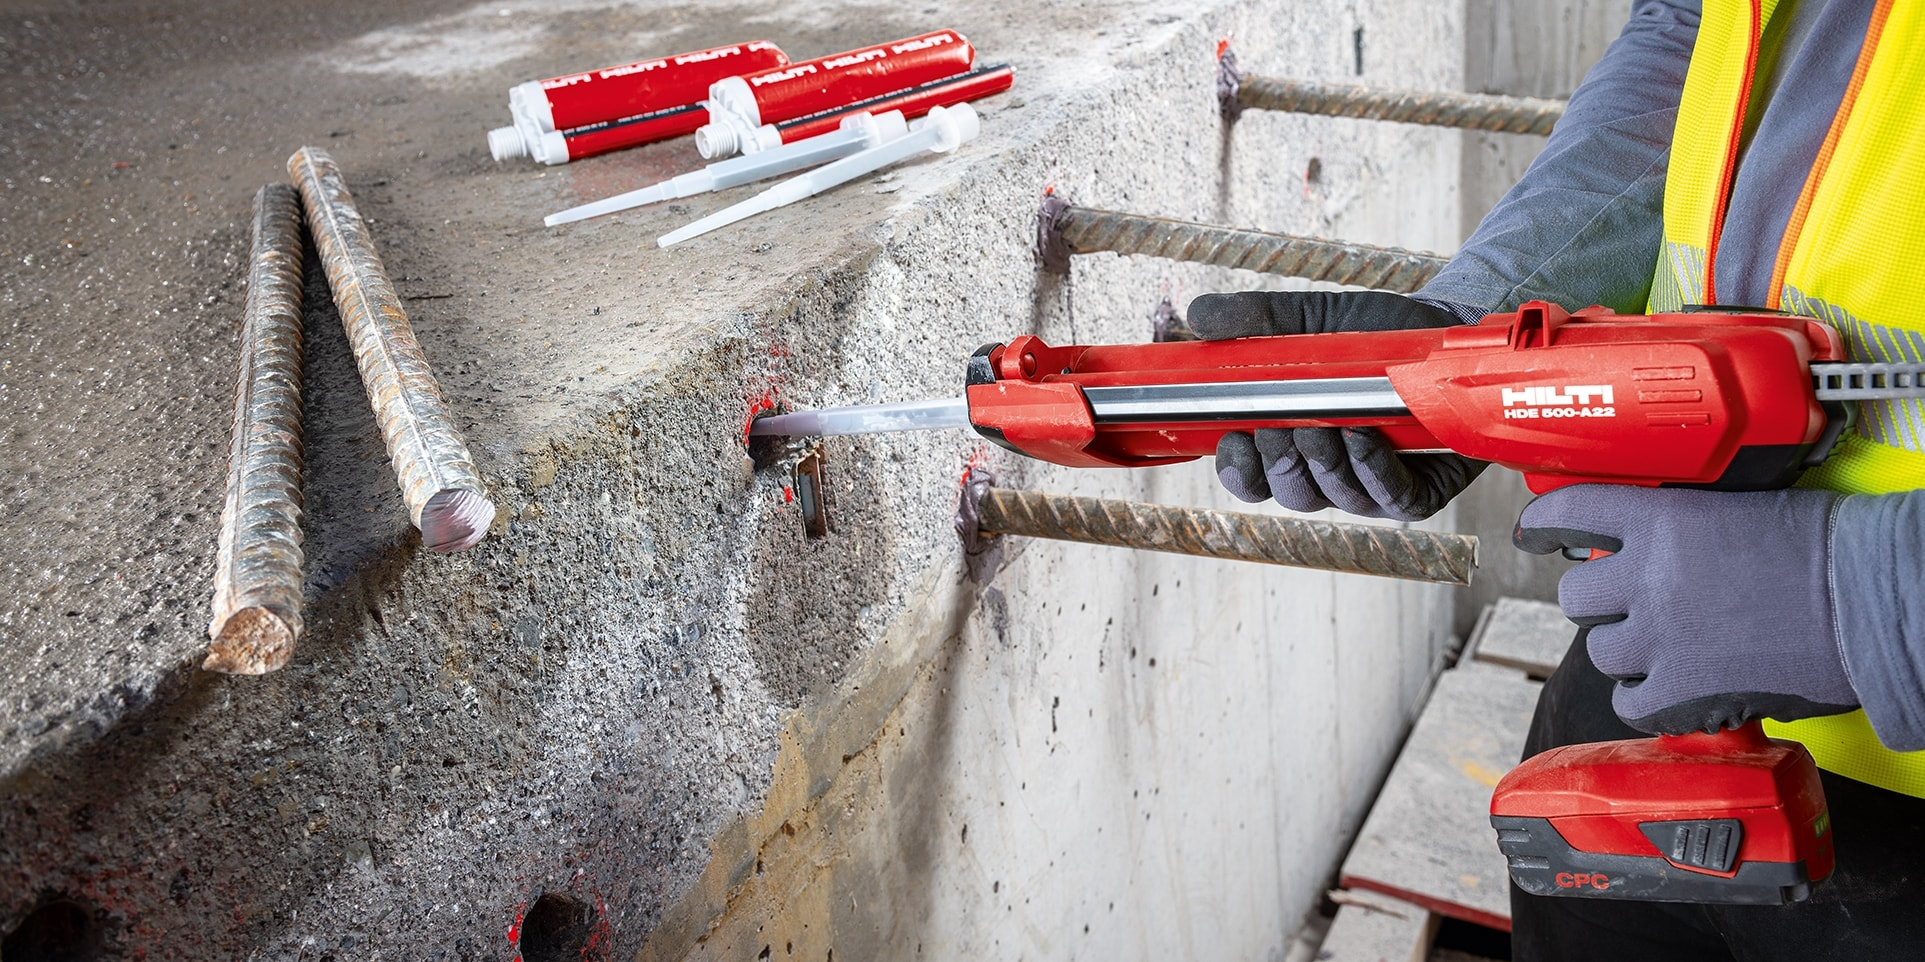 Hilti Heavy Duty Tools